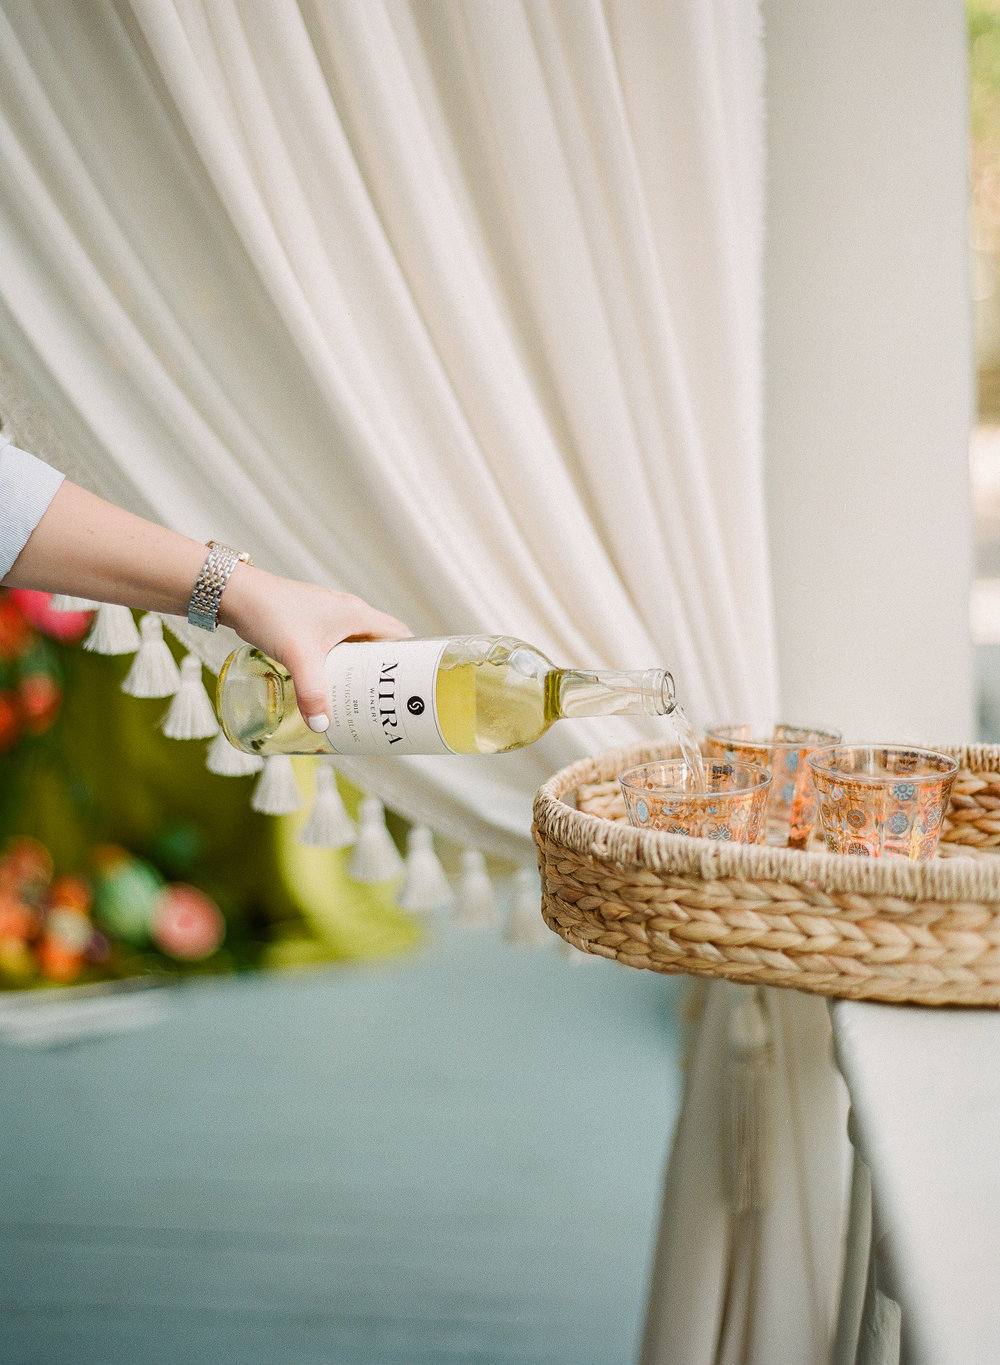 Charleston Porch Party, Events by Reagan, Dinner party, Tropical party, Charleston Event Planner , Wine Glasses, Wine Tray